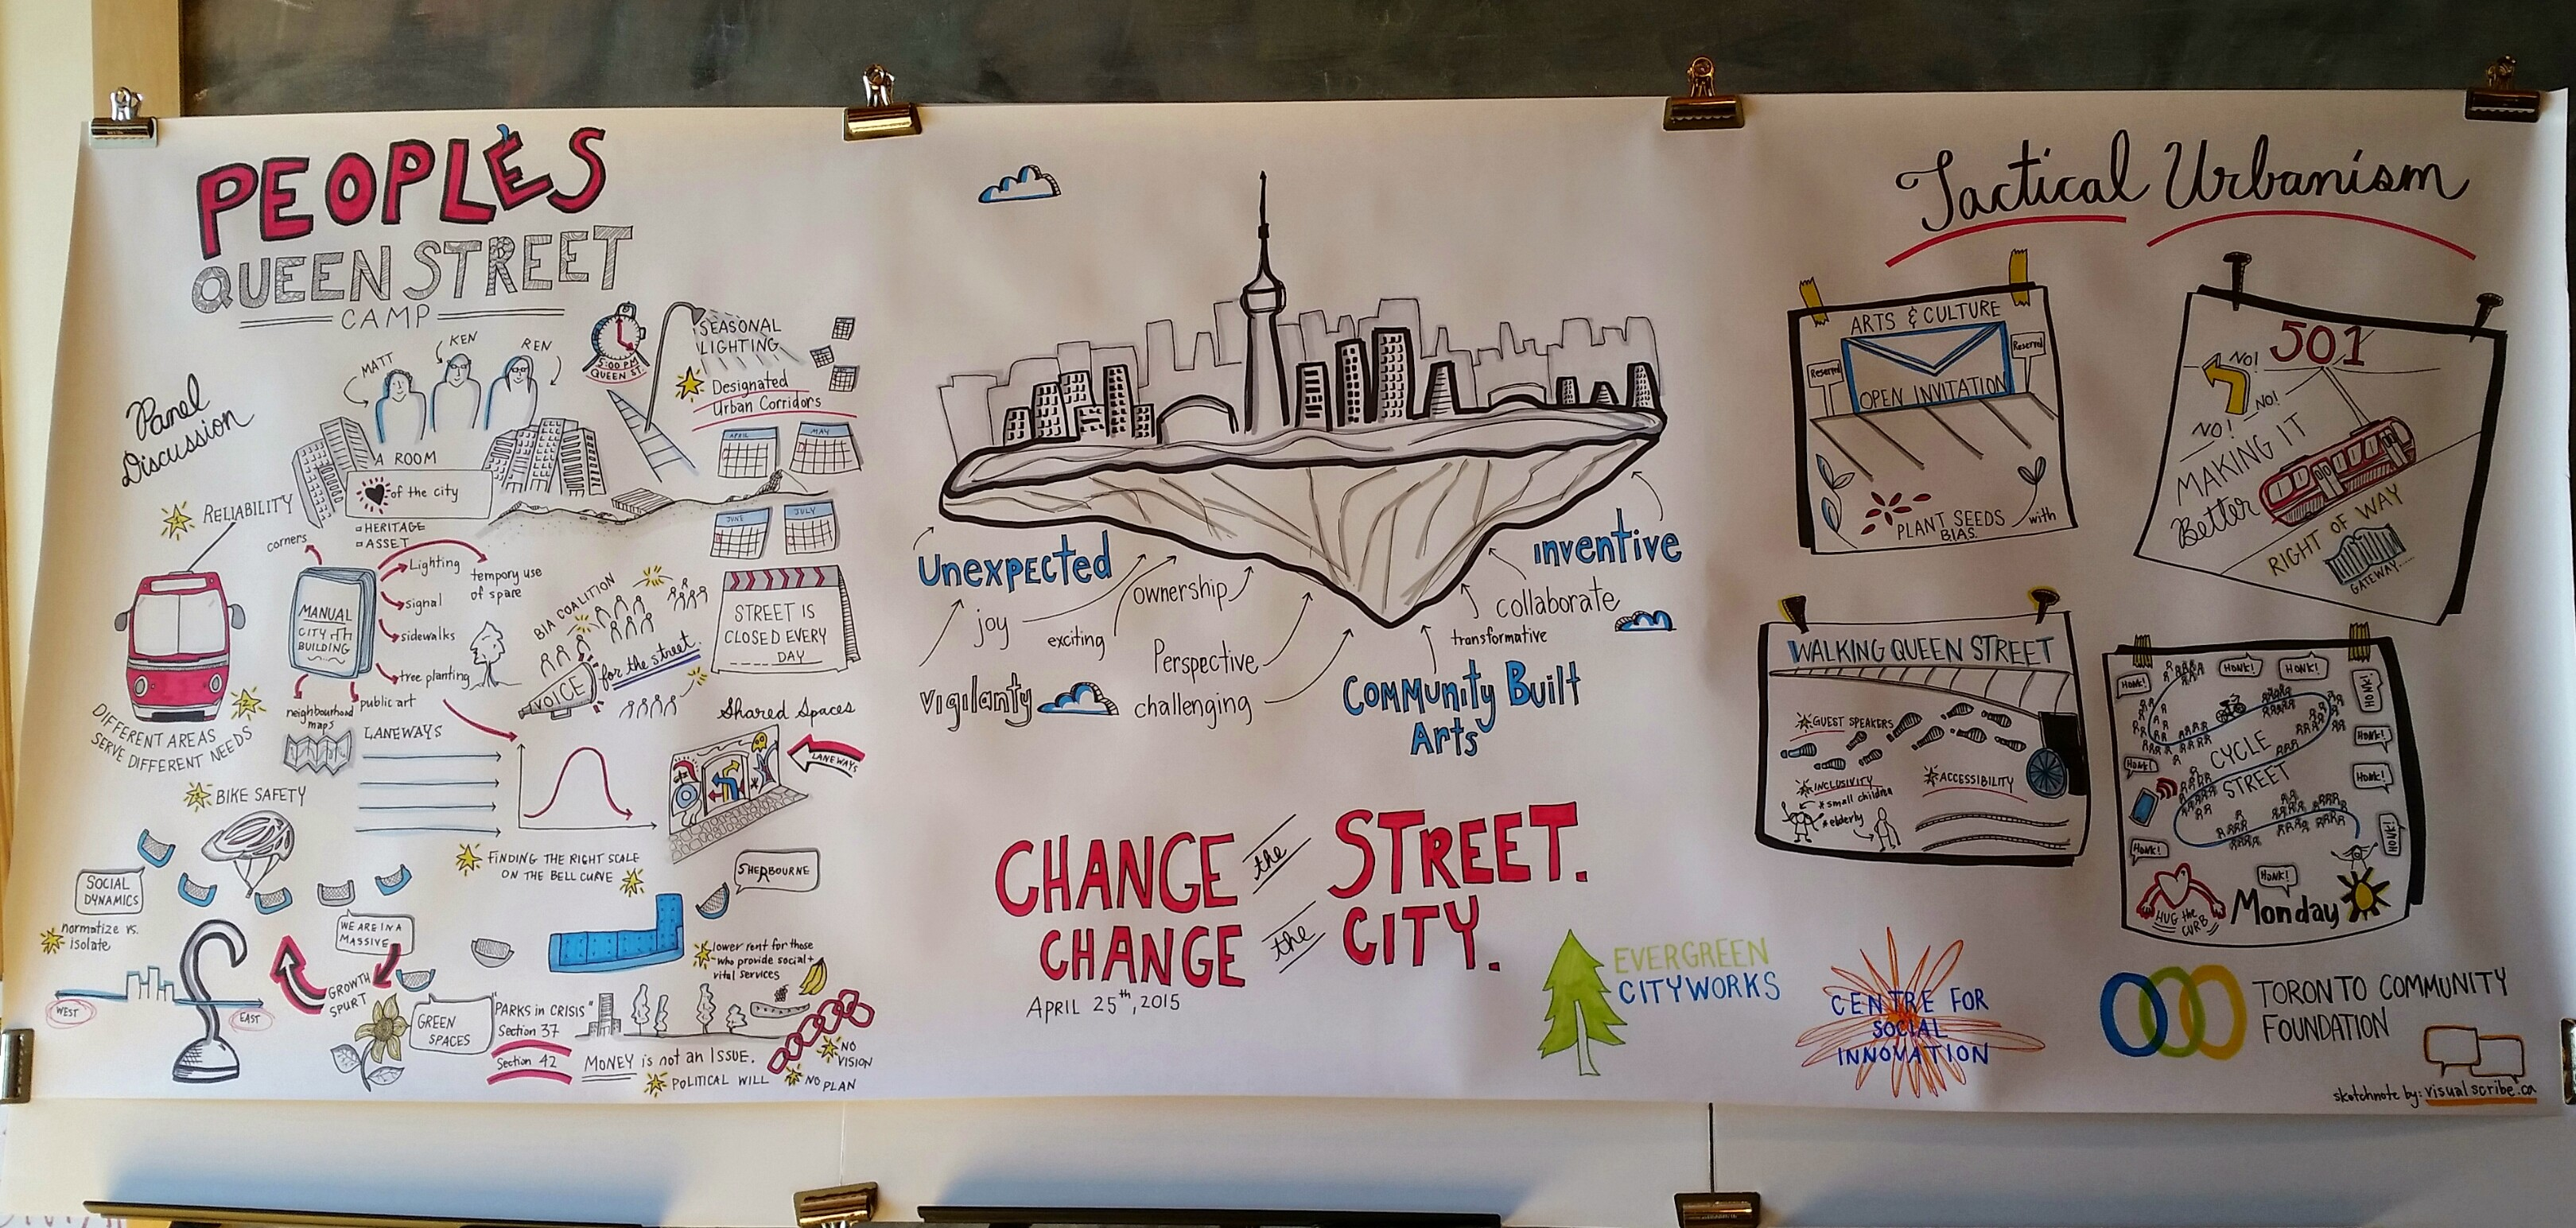 Change the Street. Change the City. People's Queen Street Camp 2015.